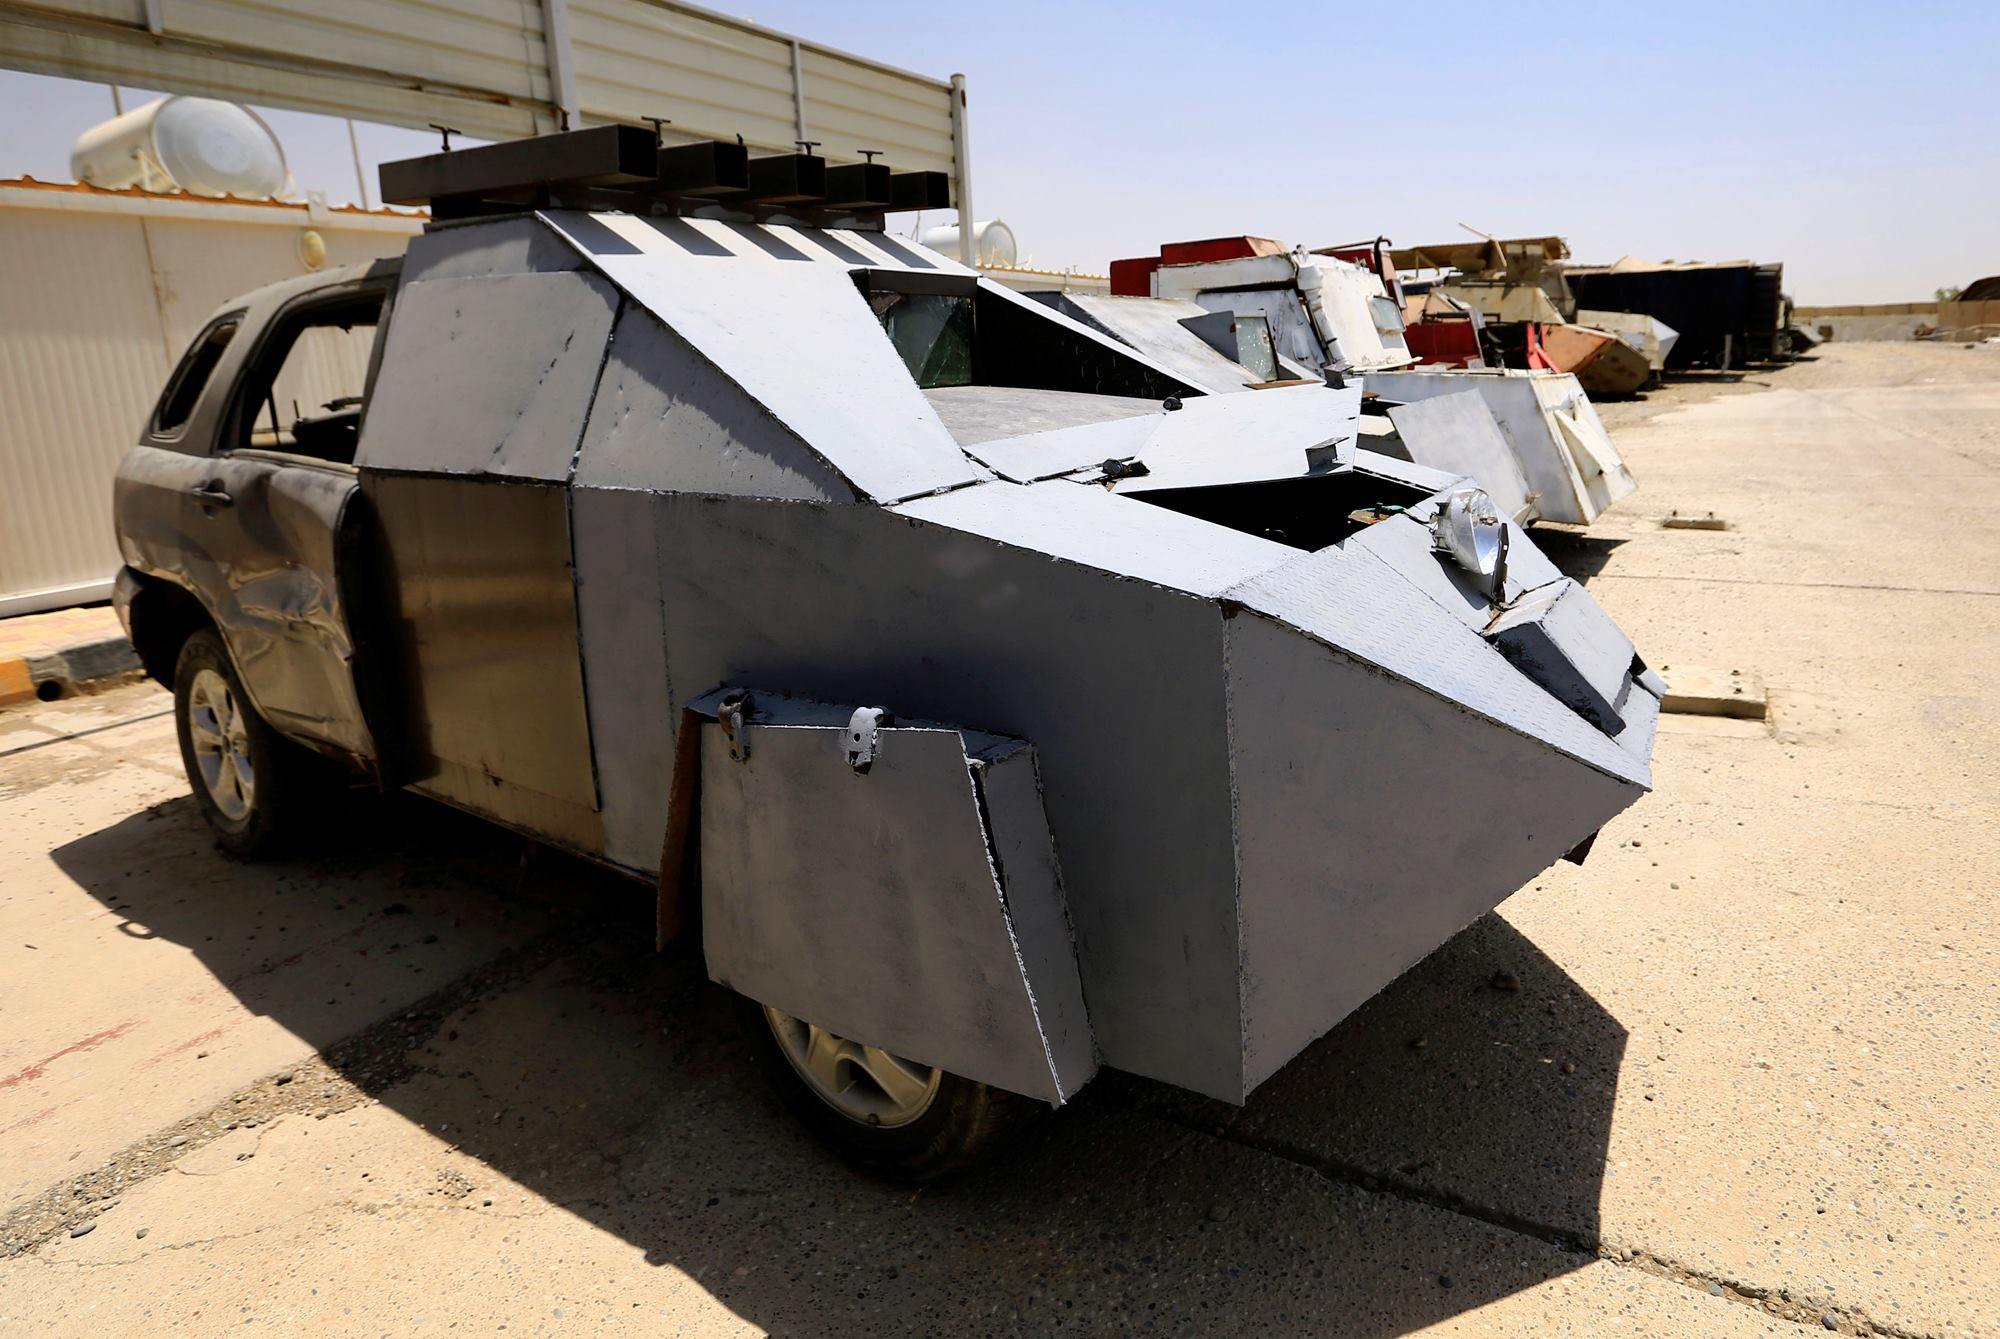 Mad Max Mosul edition U.S. backed Iraqi forces discover a fleet of improv armored vehicles 5